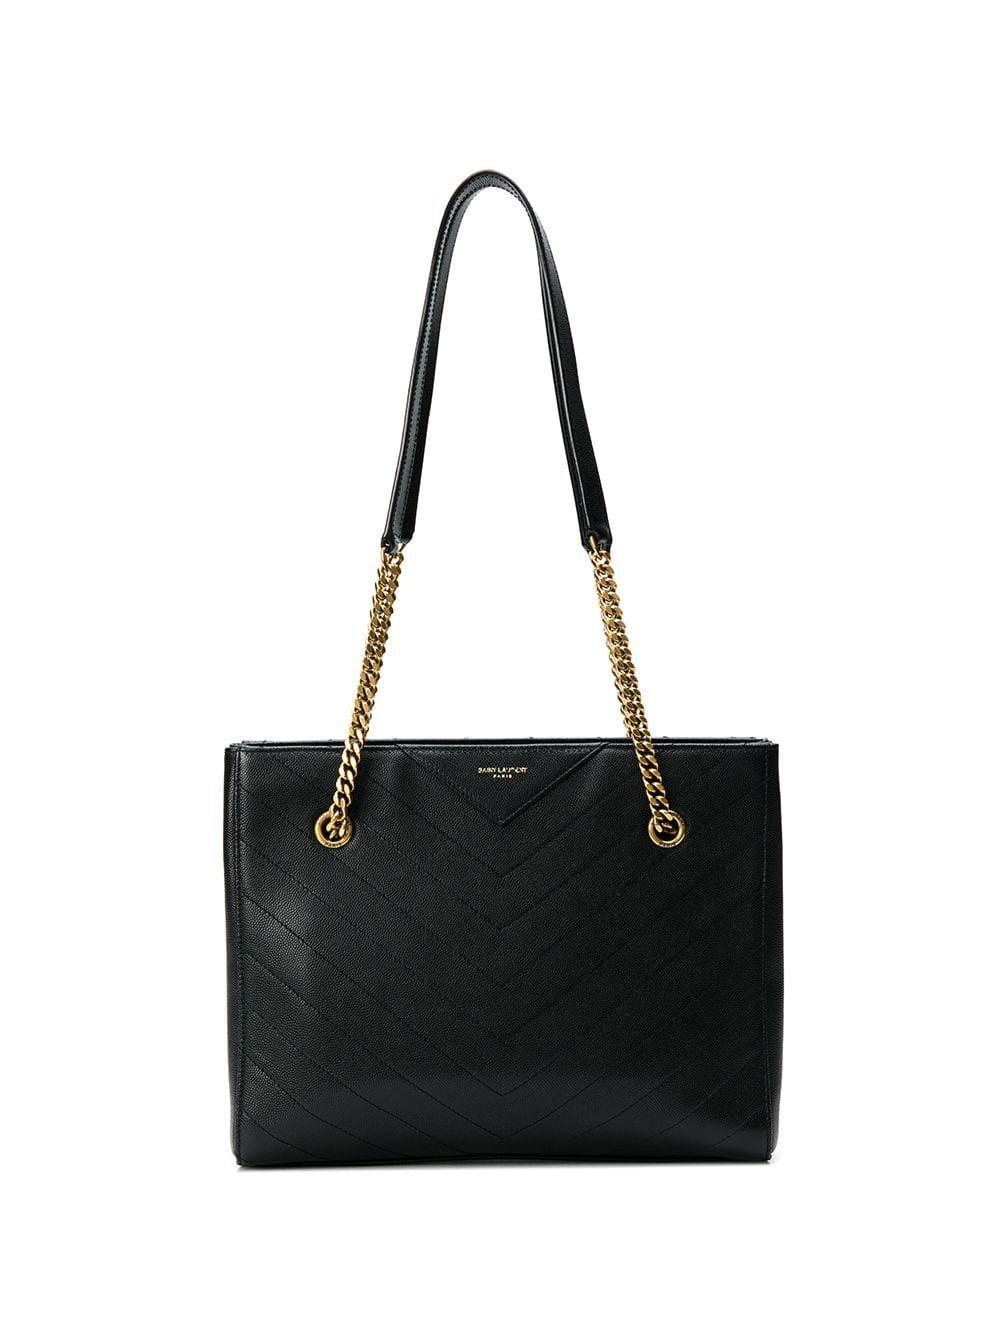 Tribeca Small Double Chain Shoulder Bag